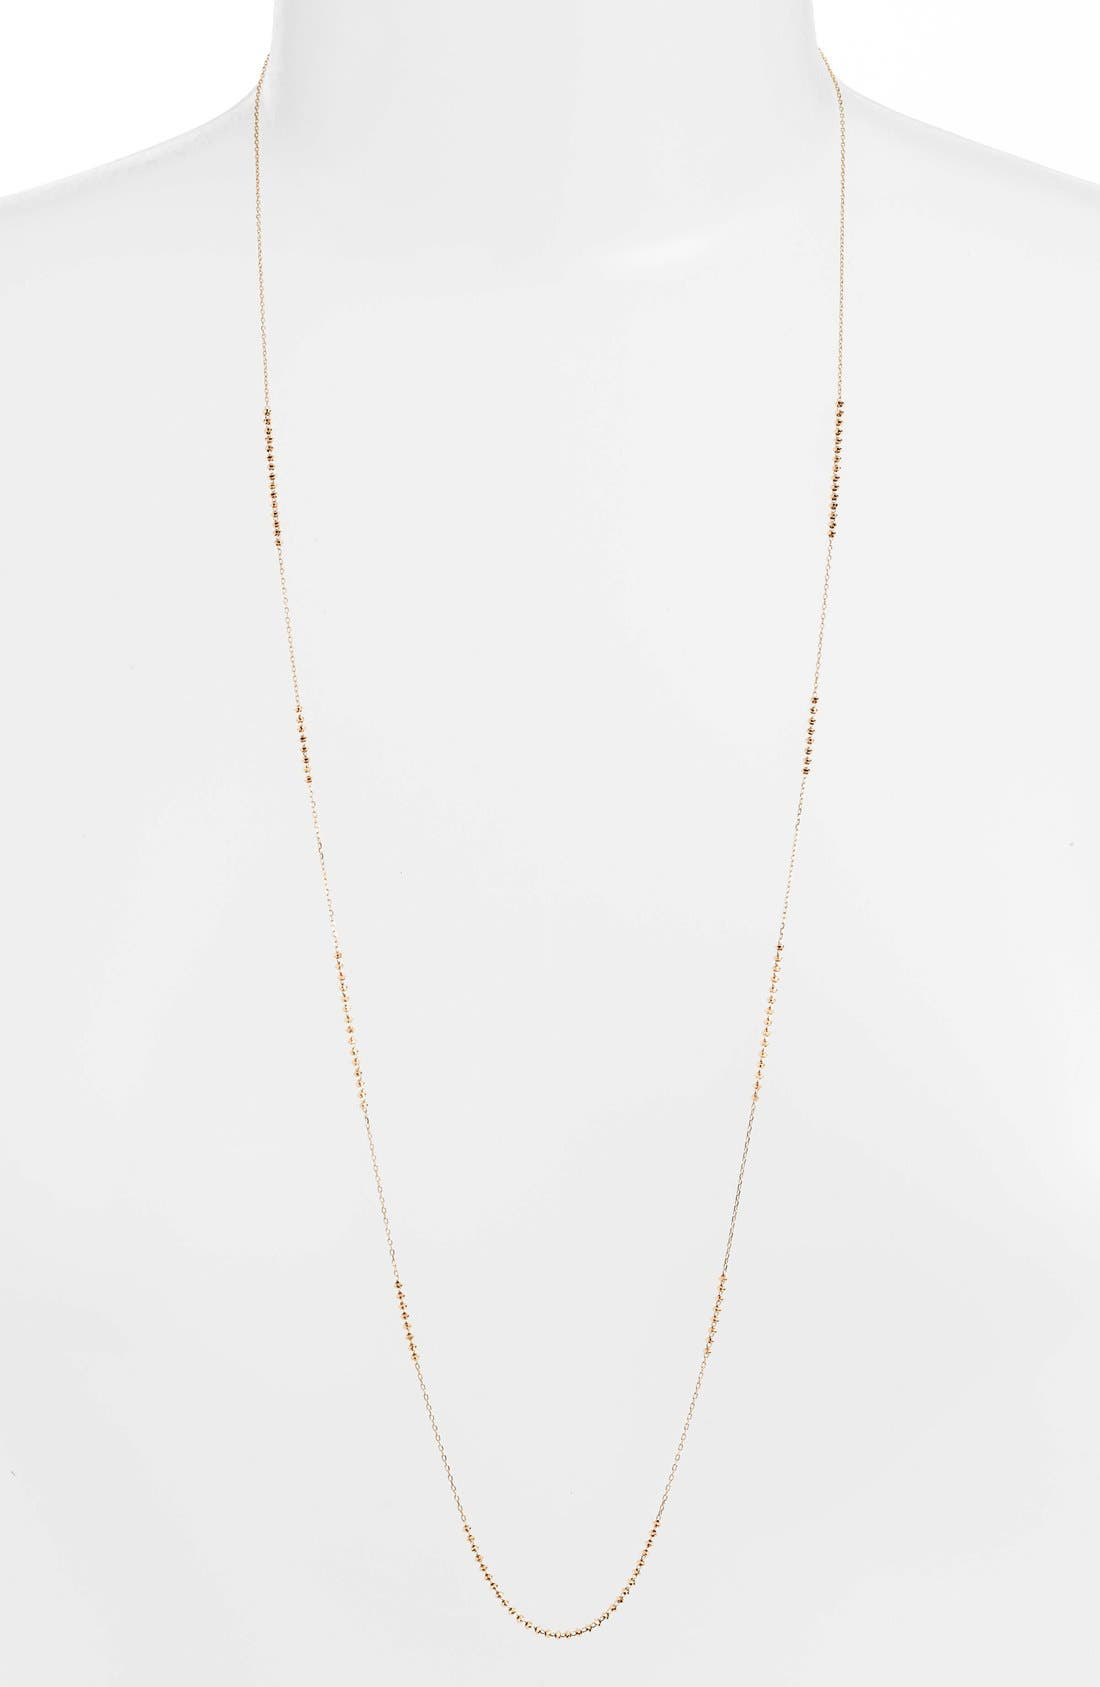 POPPY FINCH Shimmer Strand Necklace